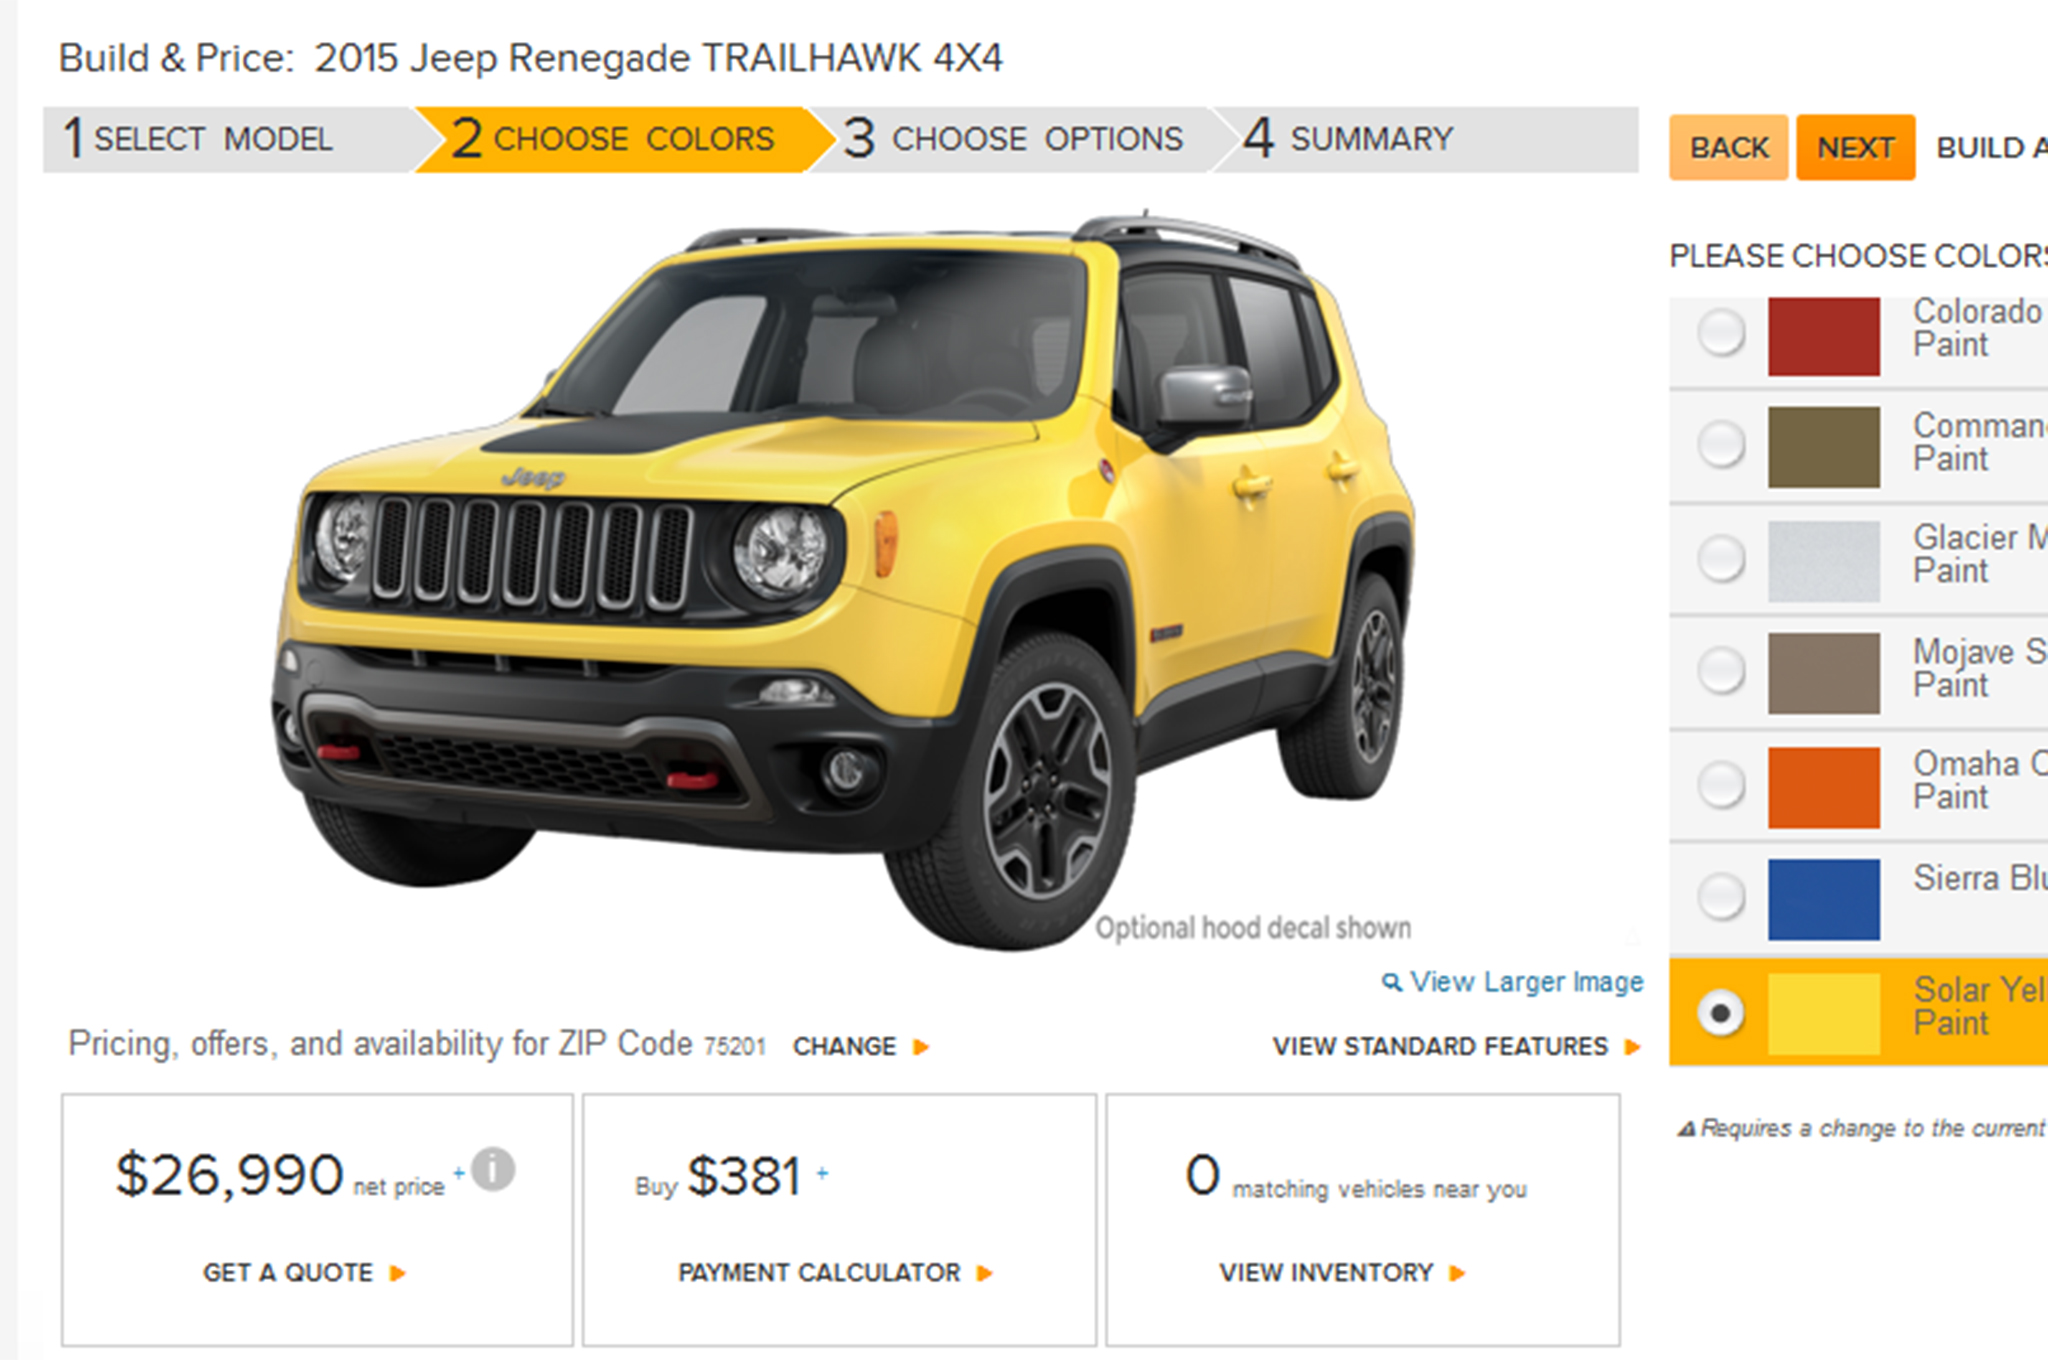 Perfect 2015 Jeep Renegade Build Your Own Feature Goes Online